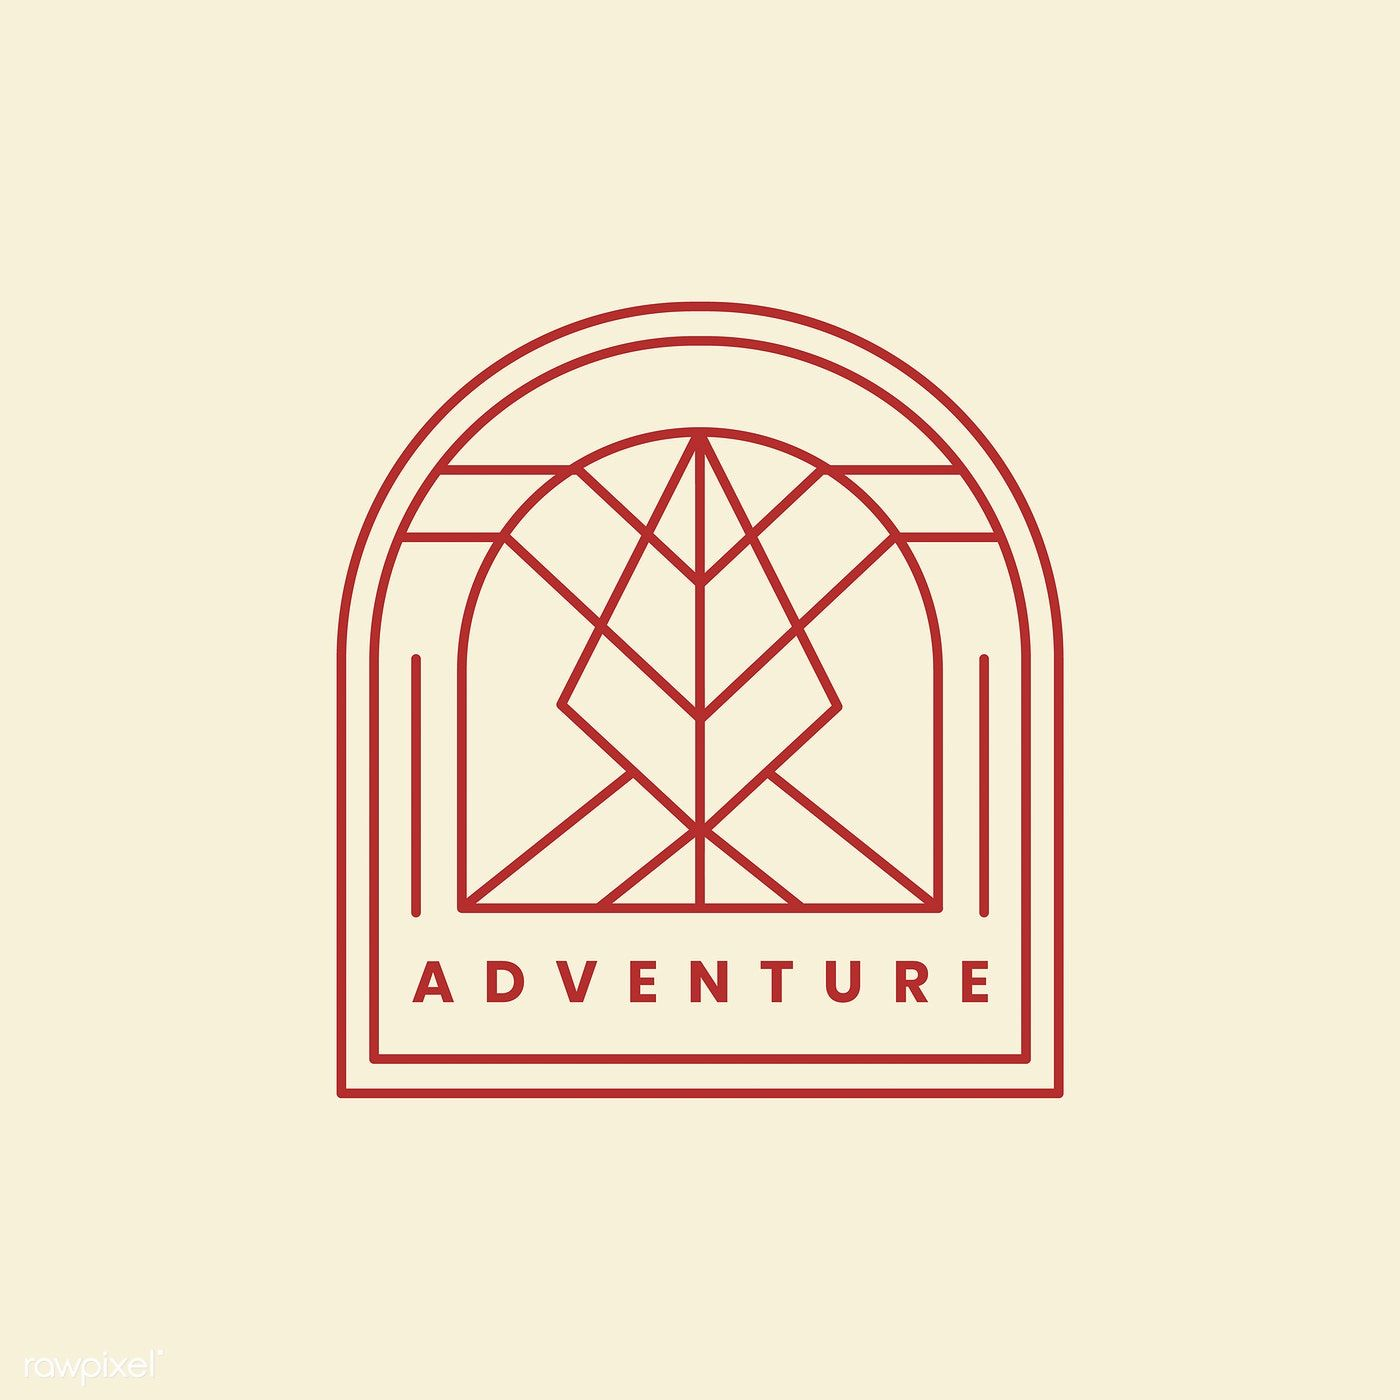 Outdoor adventure logo badge template free image by